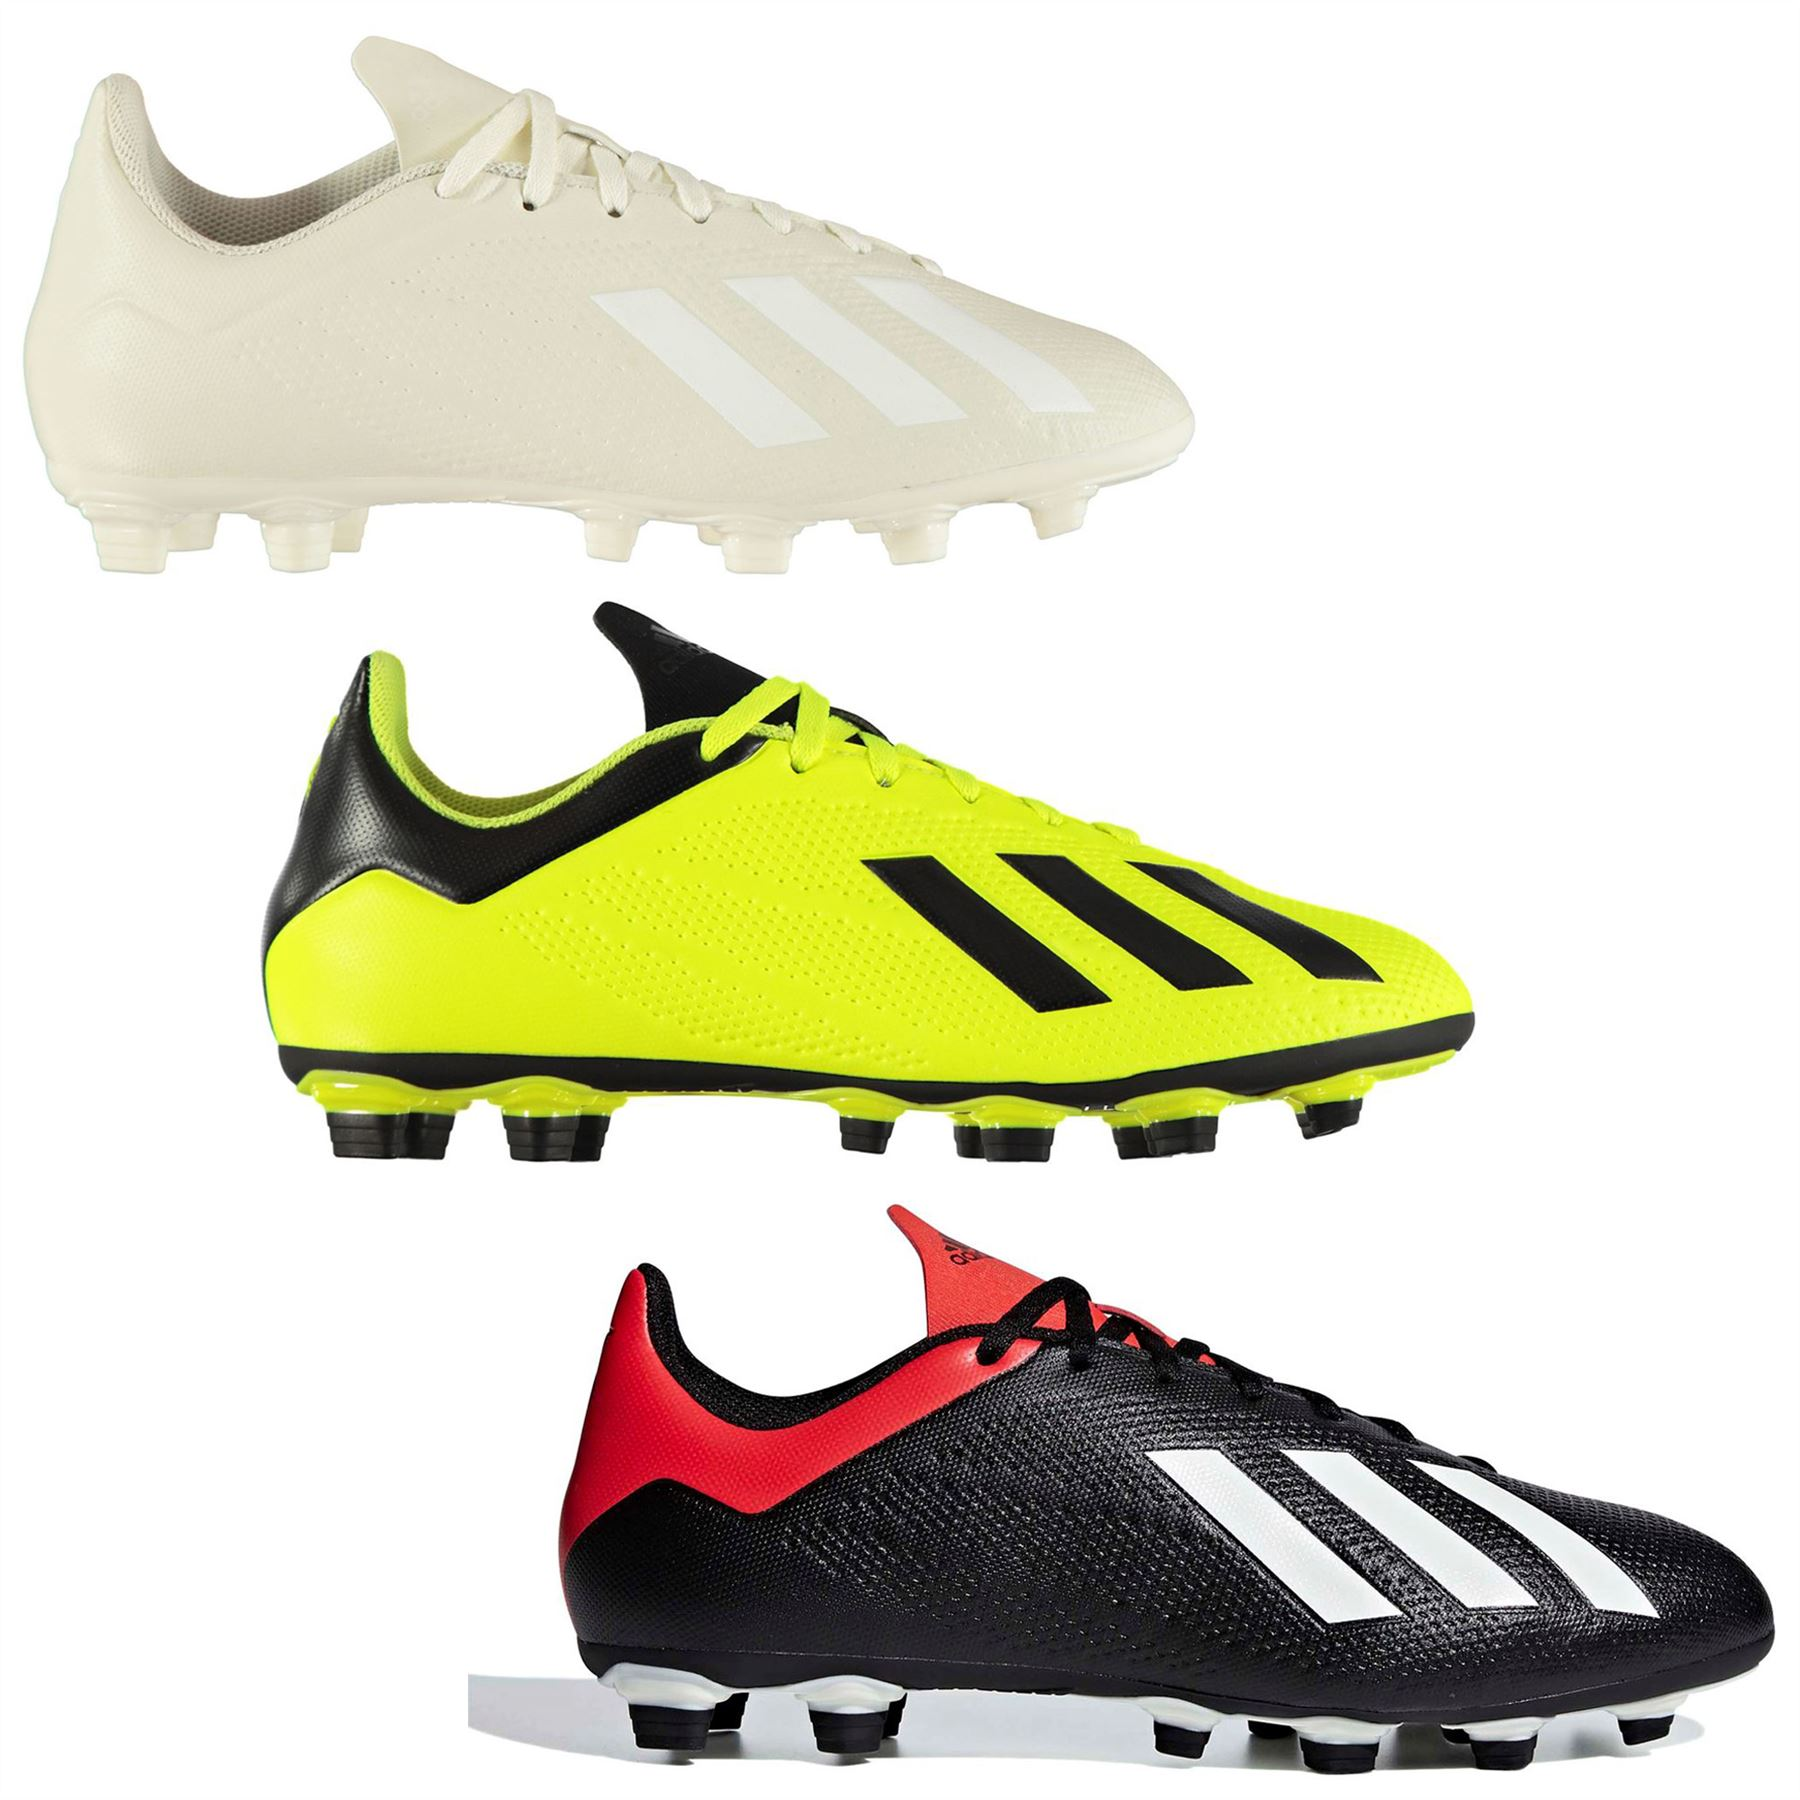 ... adidas X 18.4 FG Firm Ground Football Boots Mens Soccer Shoes Cleats ... 0920c13b46937